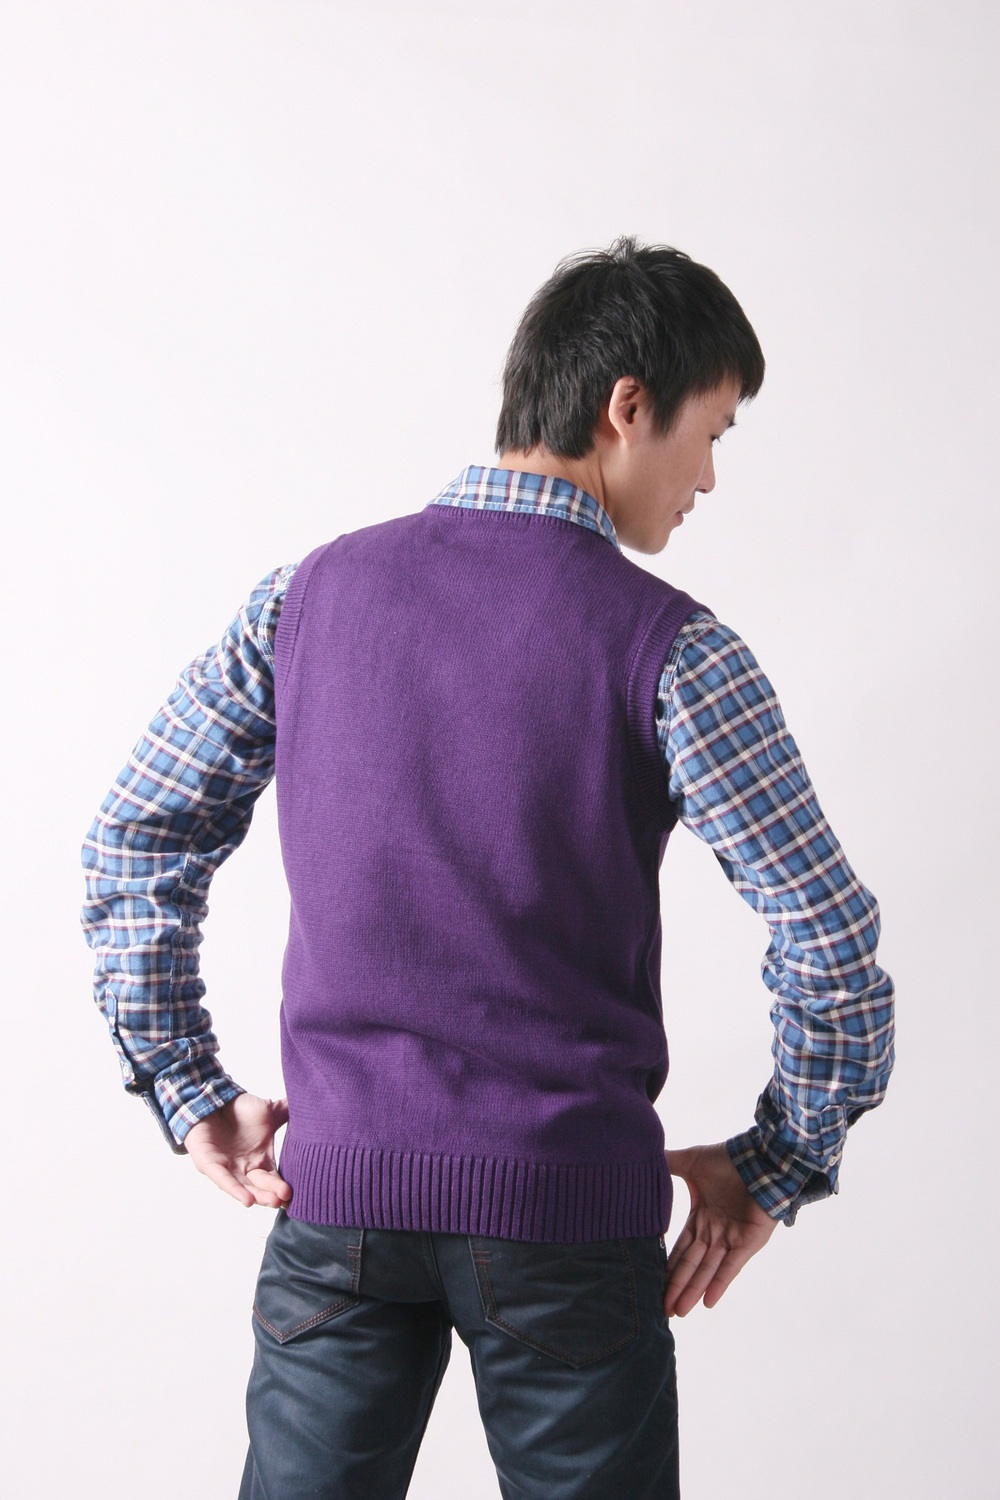 Mens Purple Argyle Sweater Knitting Pattern - Buy Argyle ...